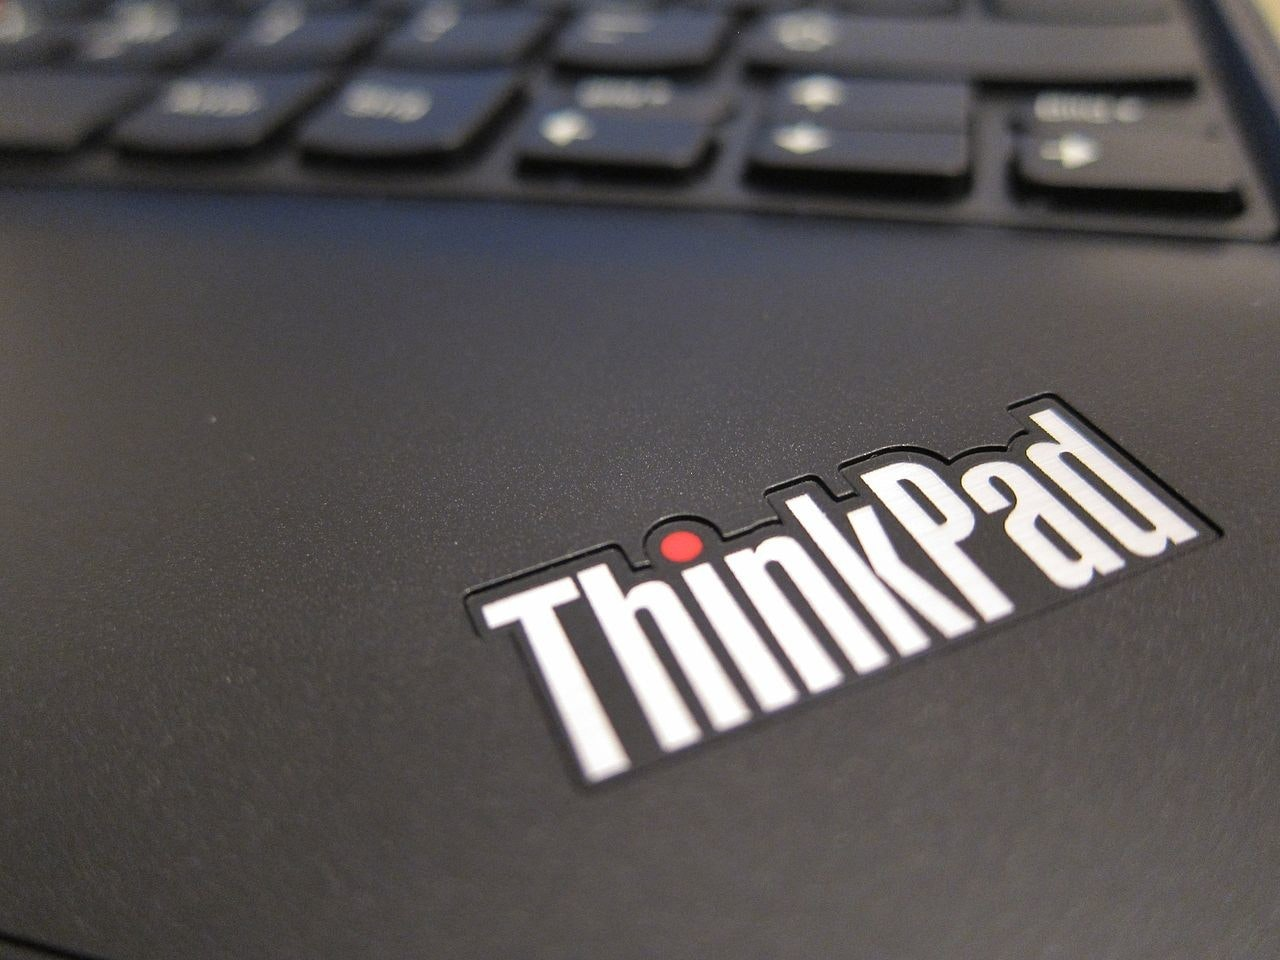 Computer keyboard, Laptop, ThinkPad X1 Carbon, , Lenovo, Computer, IBM Personal Computer, Touchpad, LenovoEMC, , lenovo thinkpad logo, computer keyboard, font, technology, space bar, electronic device, brand, automotive exterior, logo